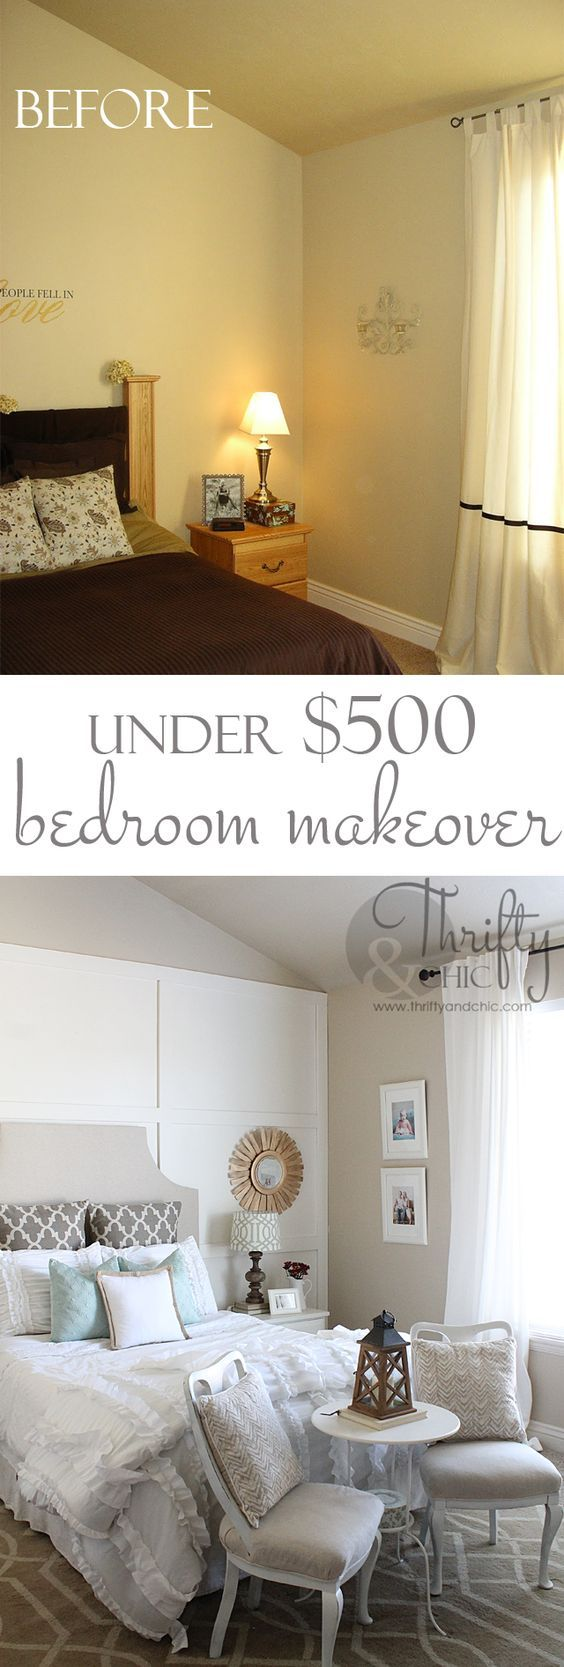 High Quality Master Bedroom Makeover For Under $500. Great DIY Ideas!: Part 21